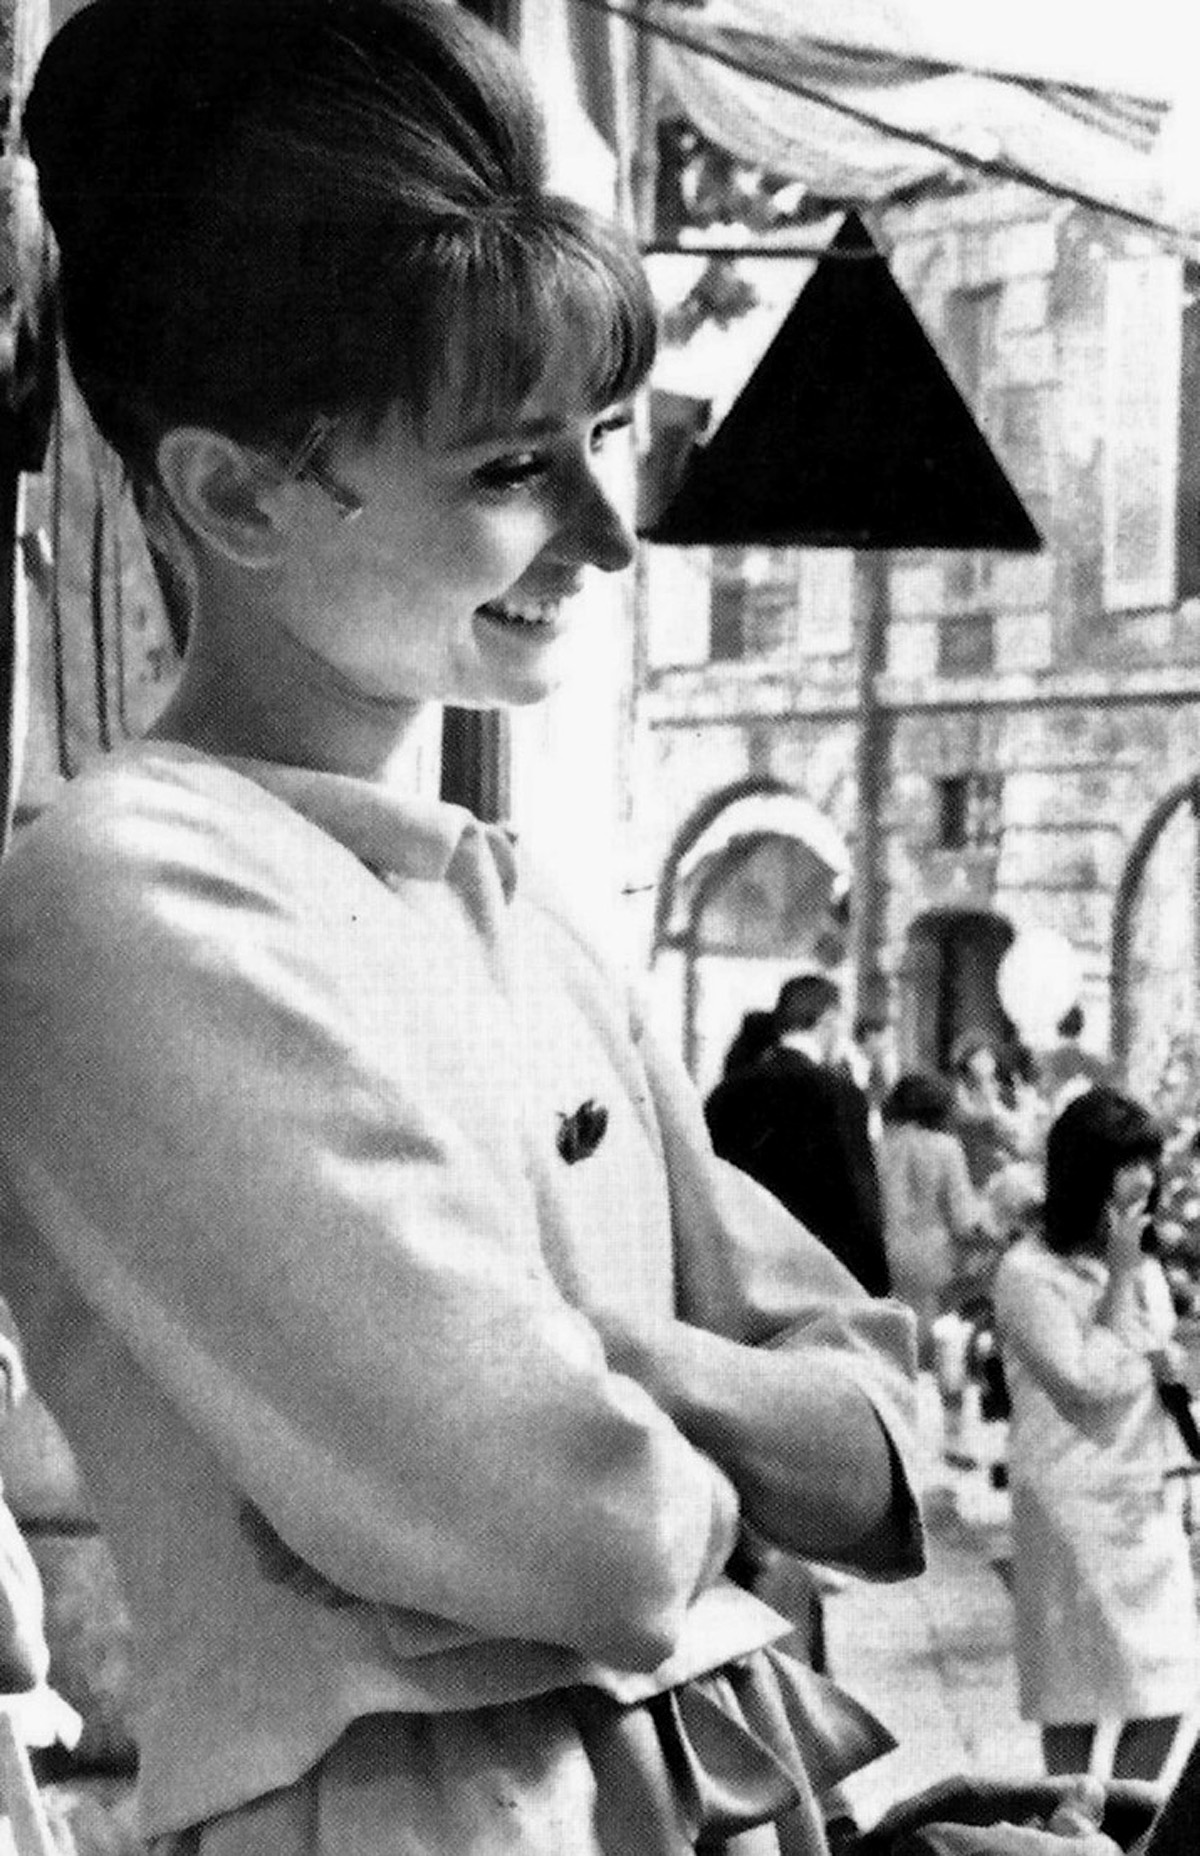 Audrey Hepburn Paris When It Sizzles 1964 Starring